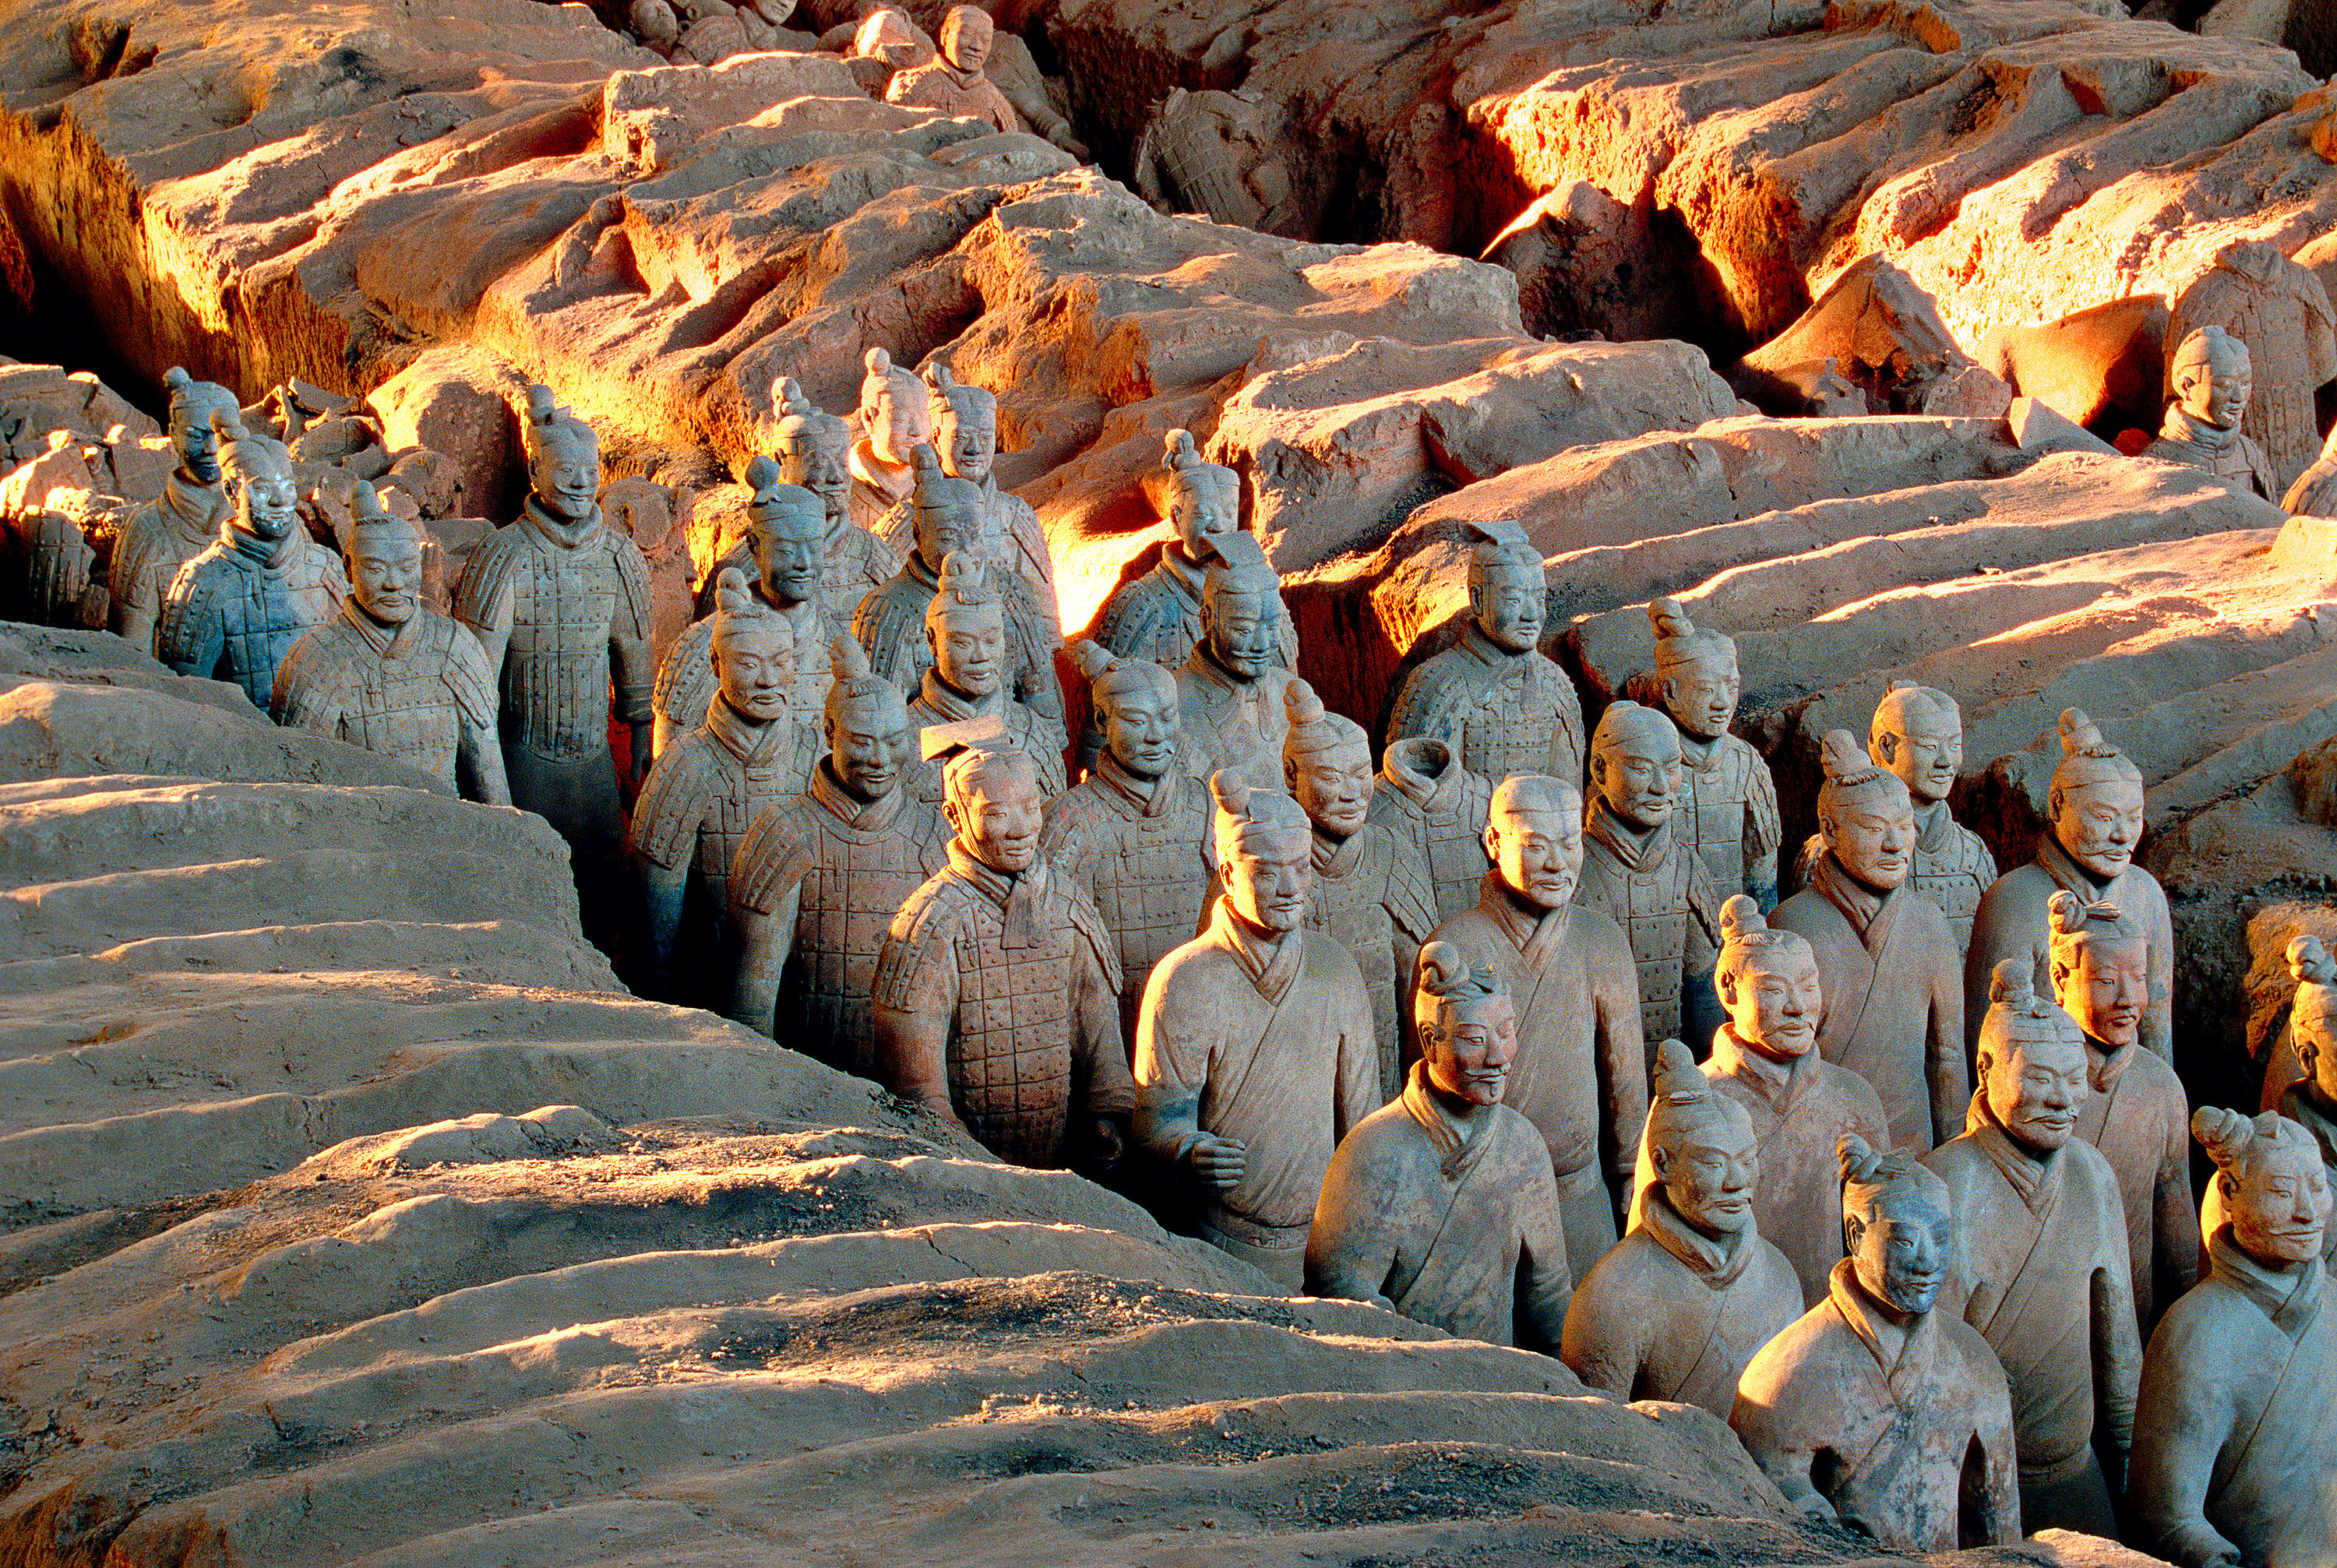 China's Terracotta Warriors are coming to the NGV